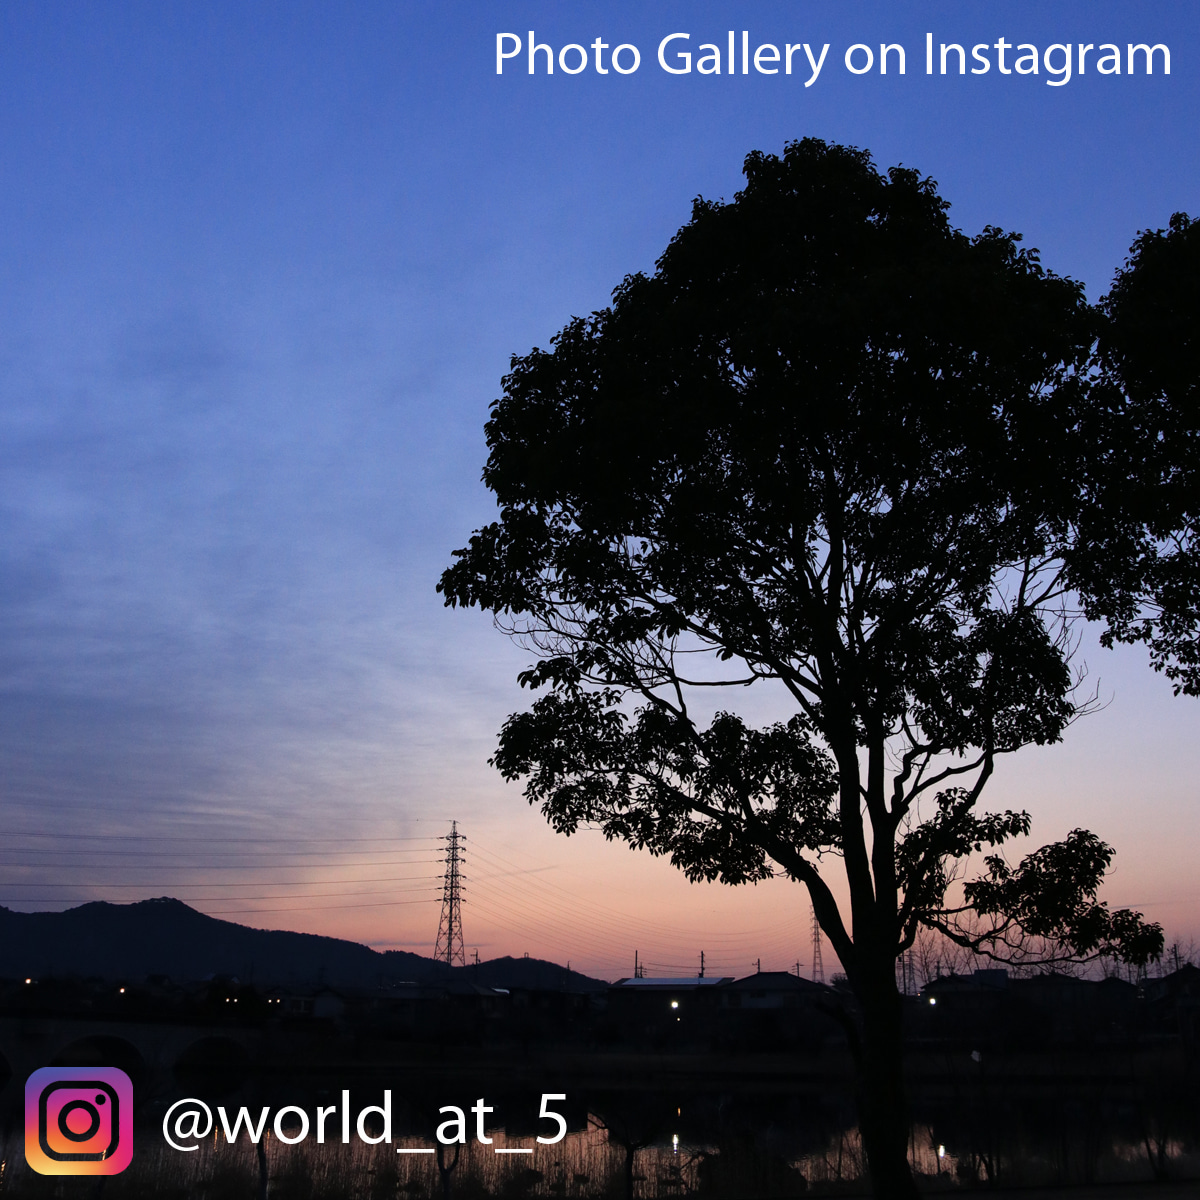 Instagram @world_at_5